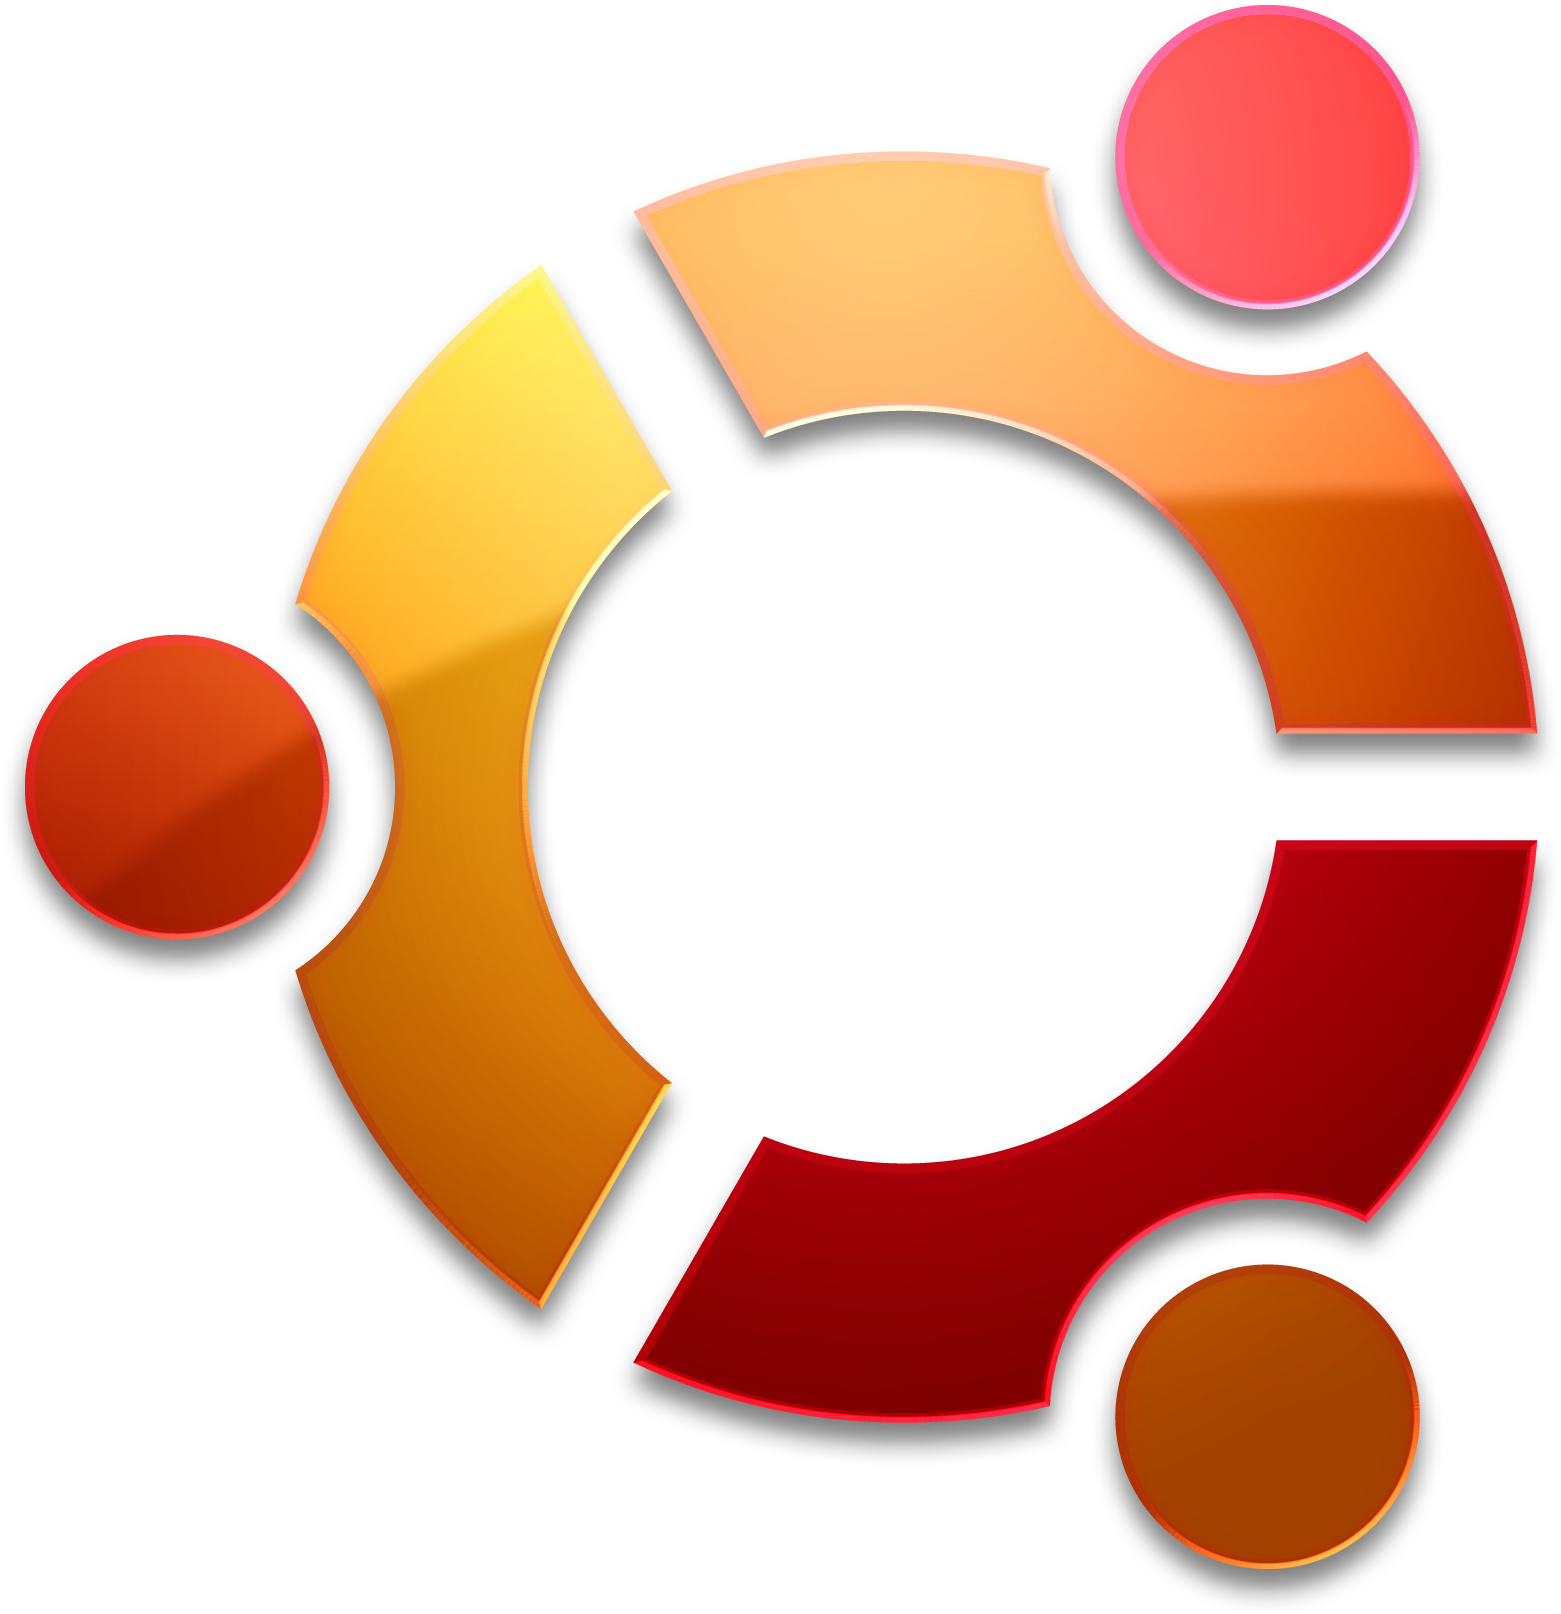 Ubuntu Logo Png Ubuntu for Phones : ar...